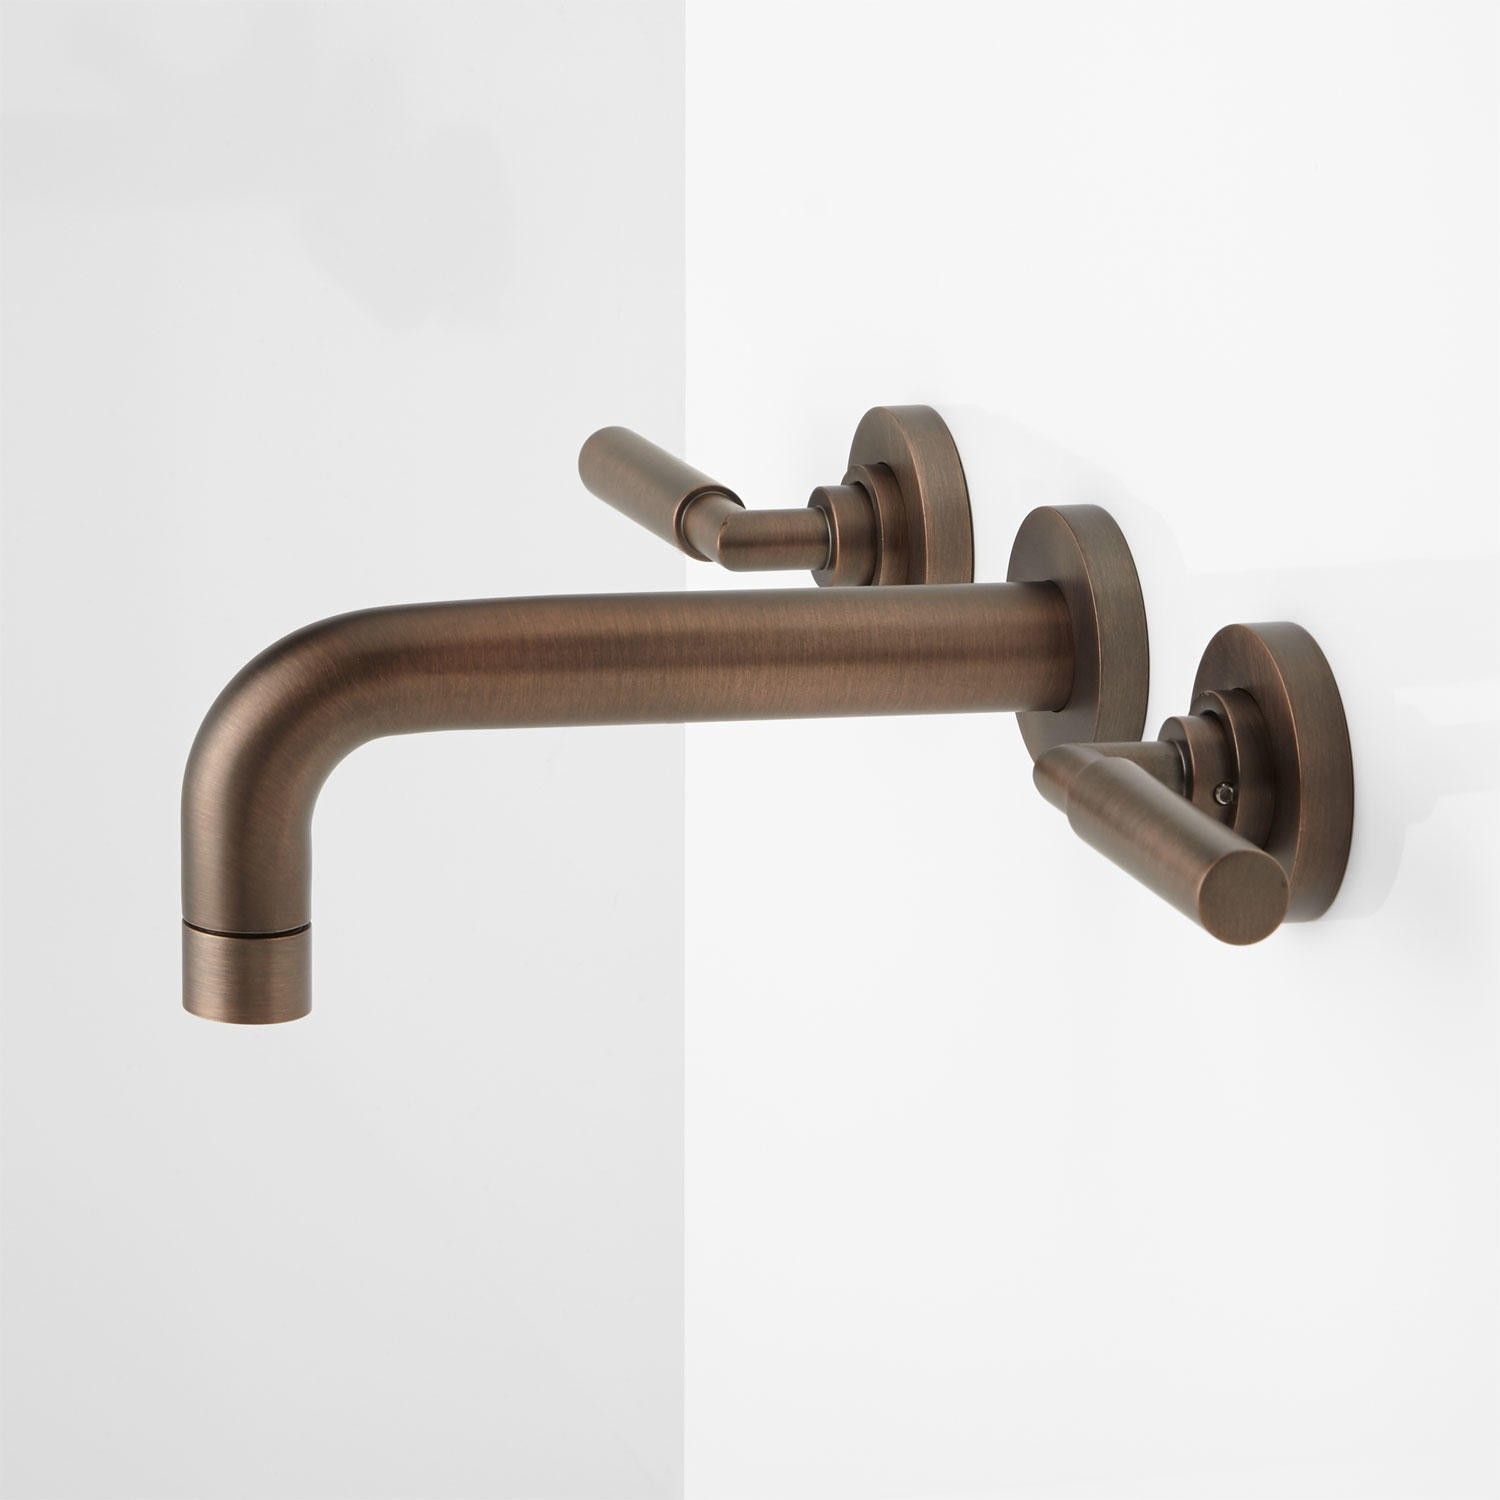 pot sinks vessel bathtub bathroom faucet faucets parts rubbed shower bronze filler replacement clawfoot moen